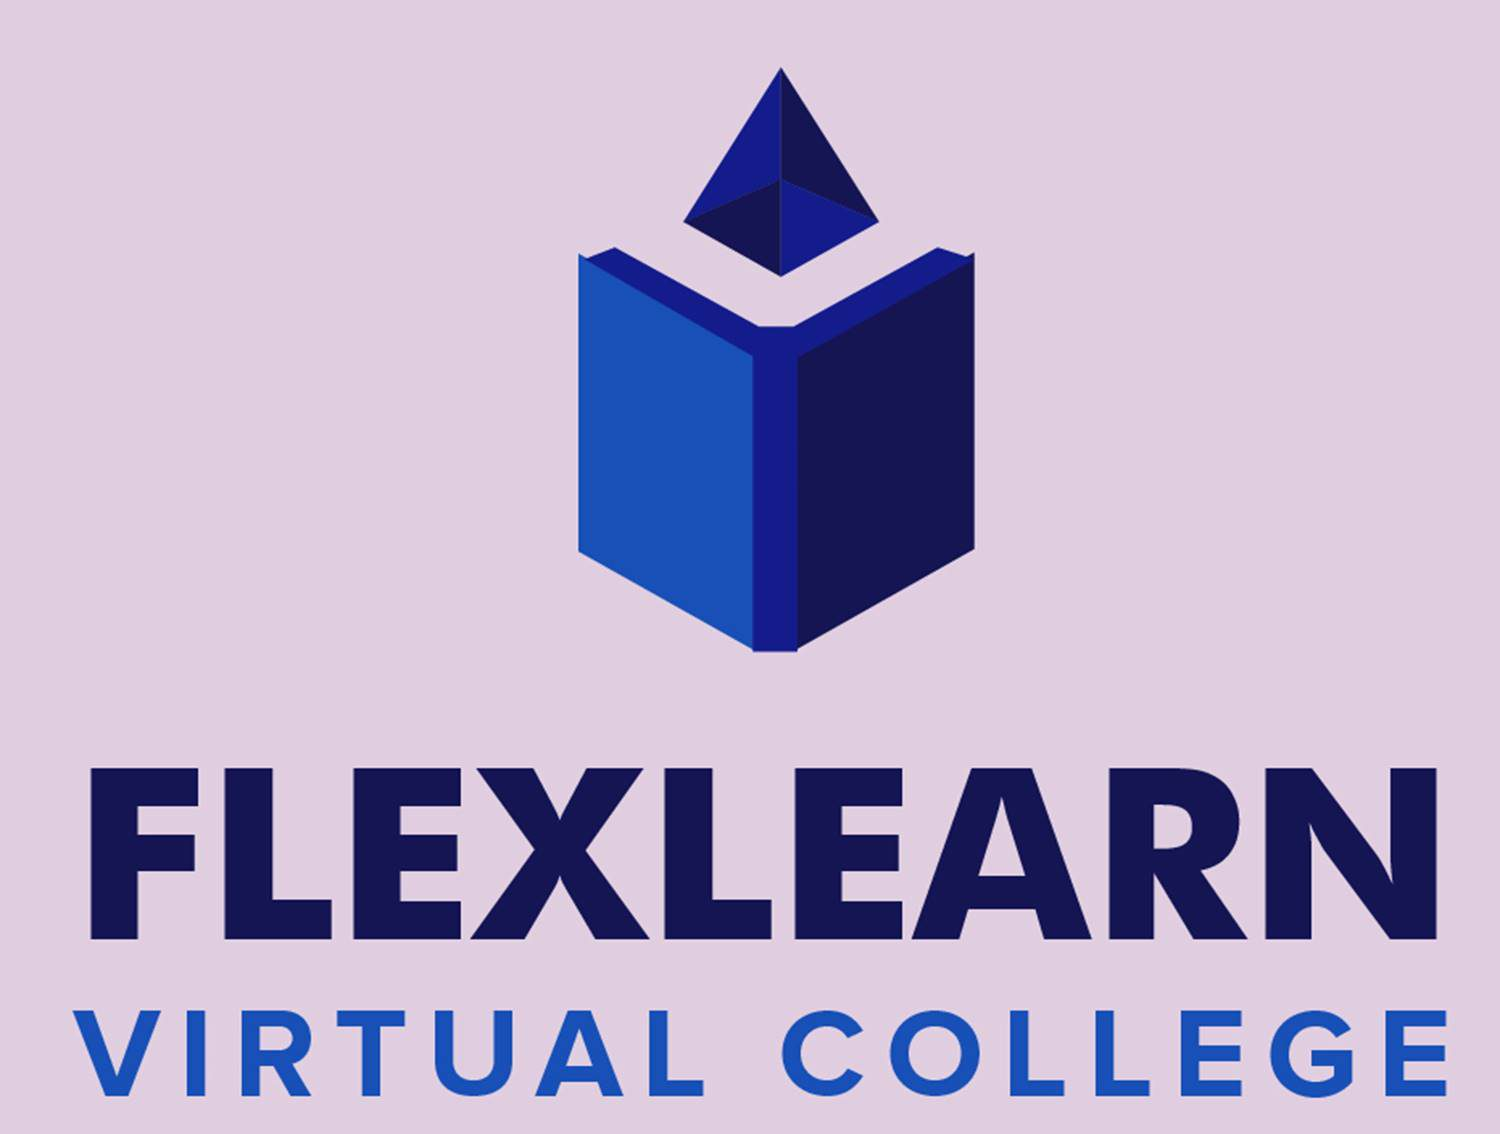 Flexlearn Virtual College